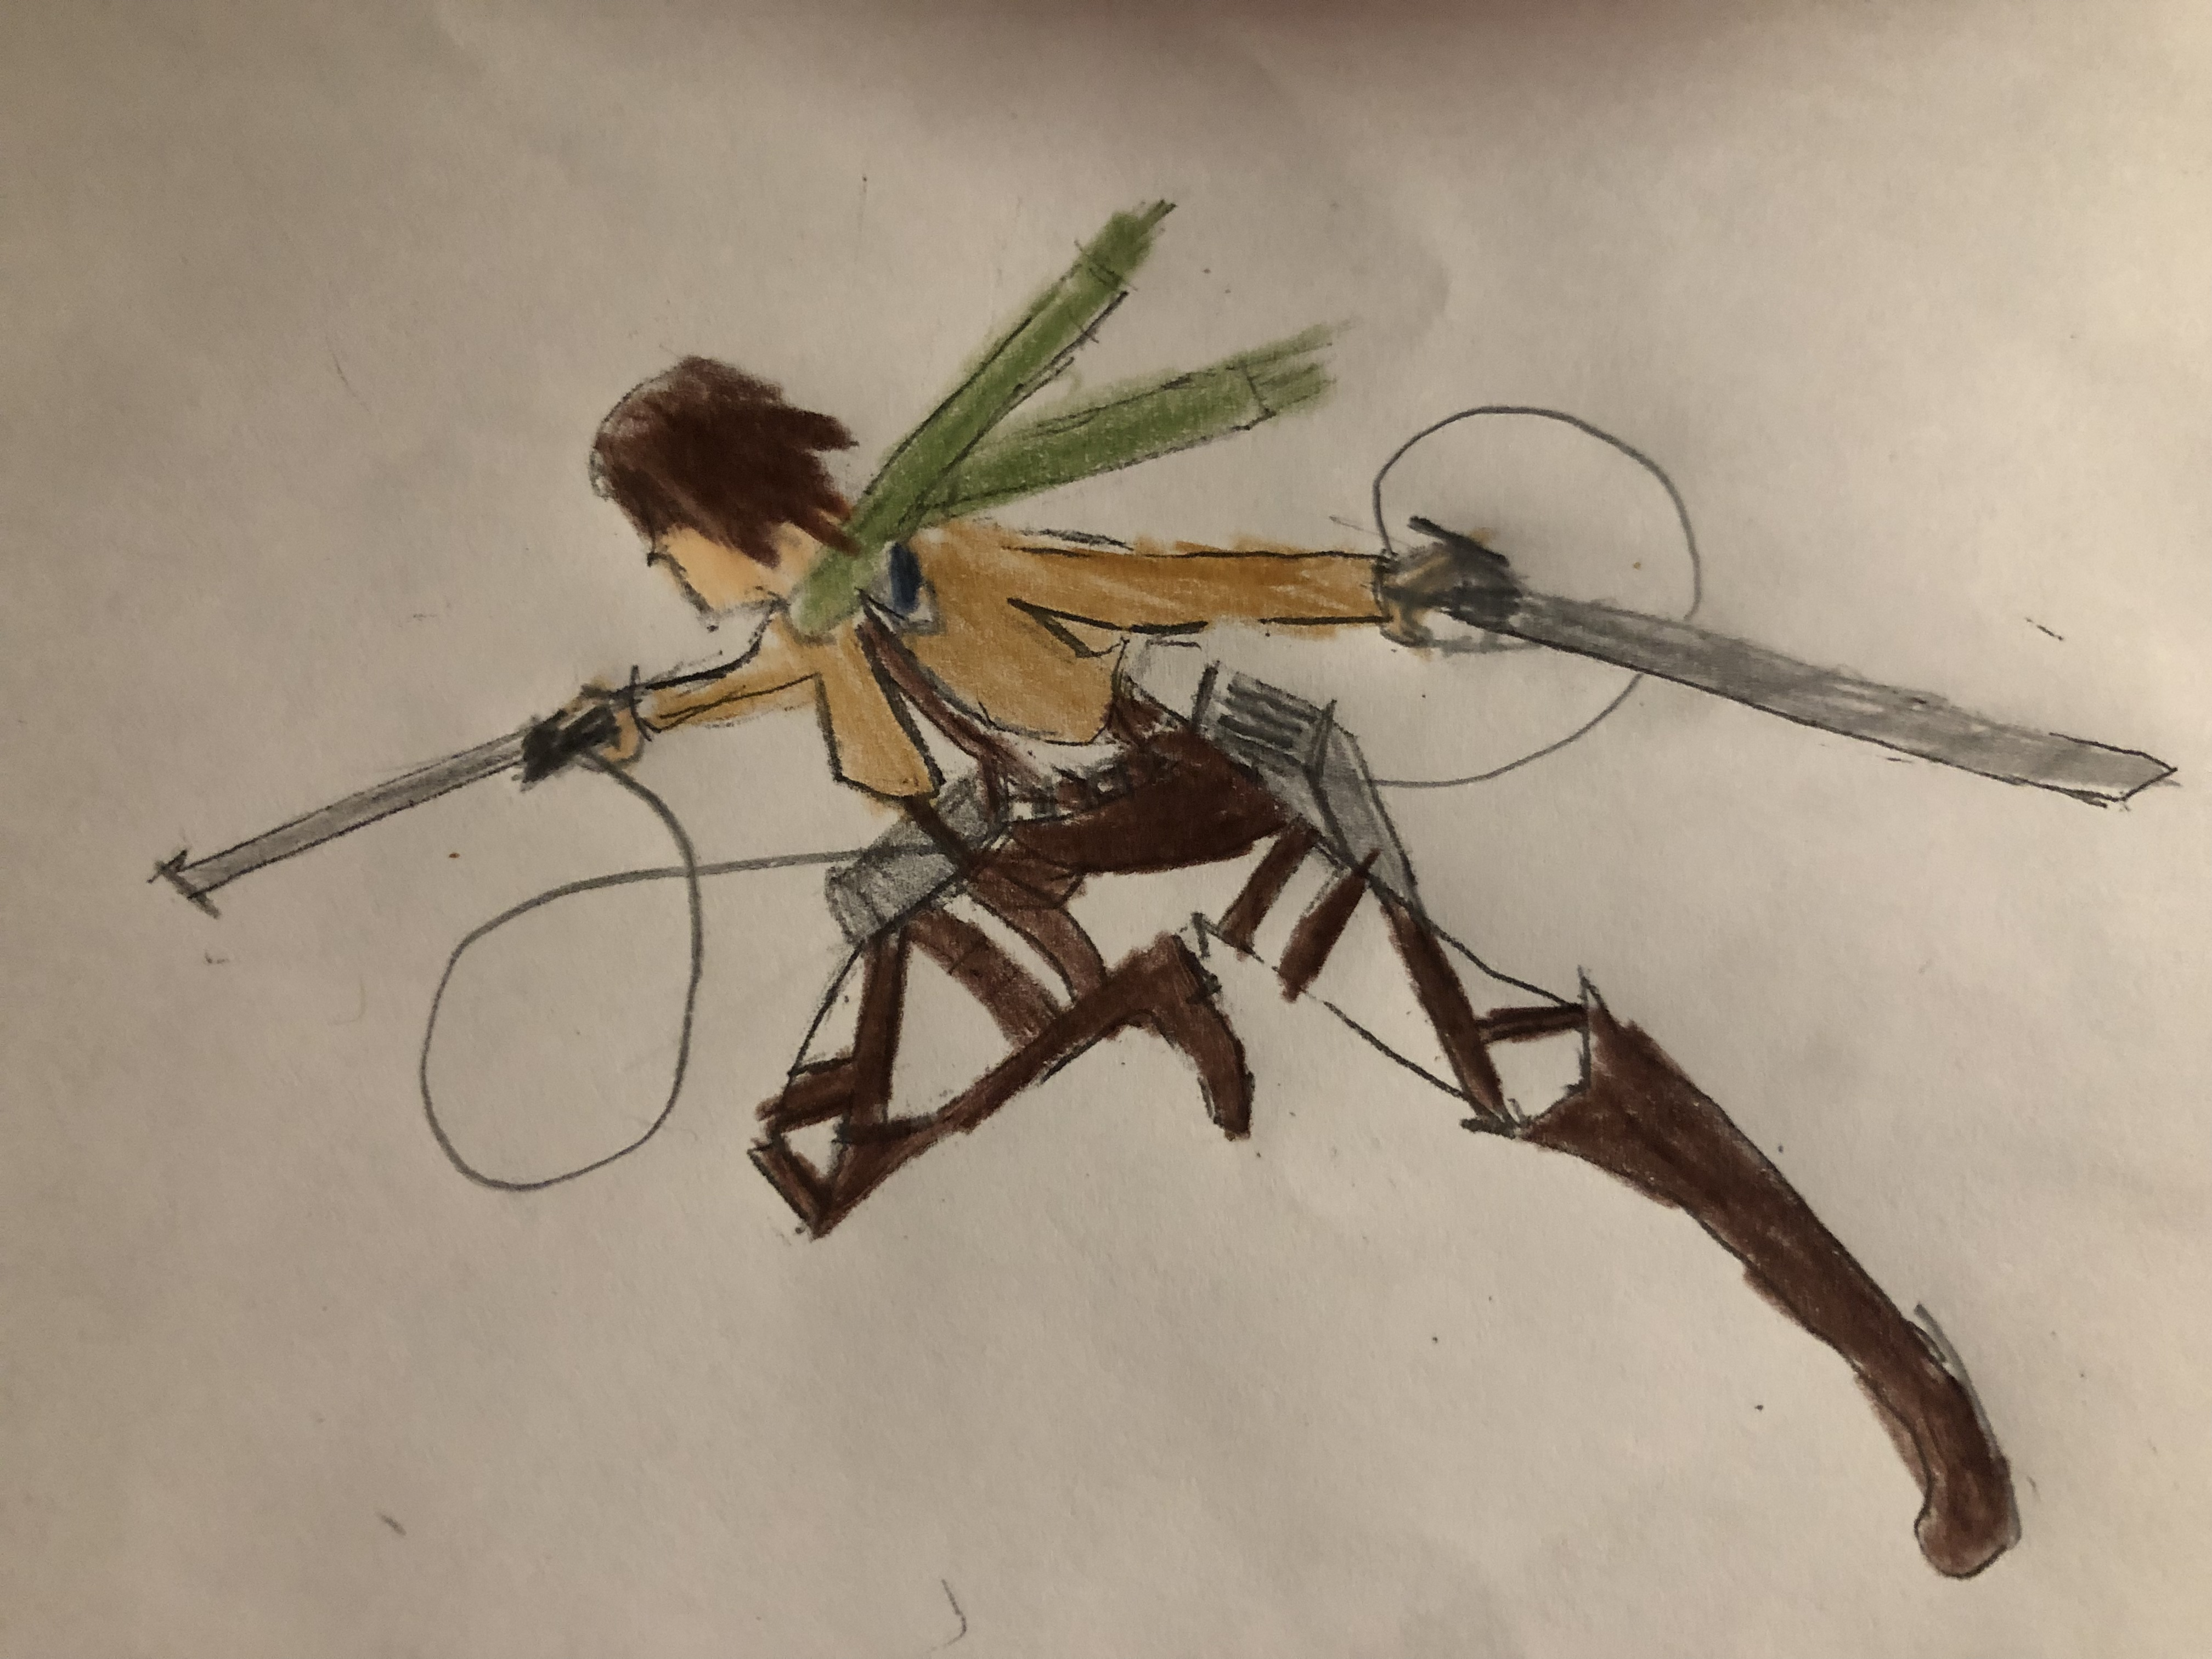 My first AoT drawing. I did it of myself as an AoT character